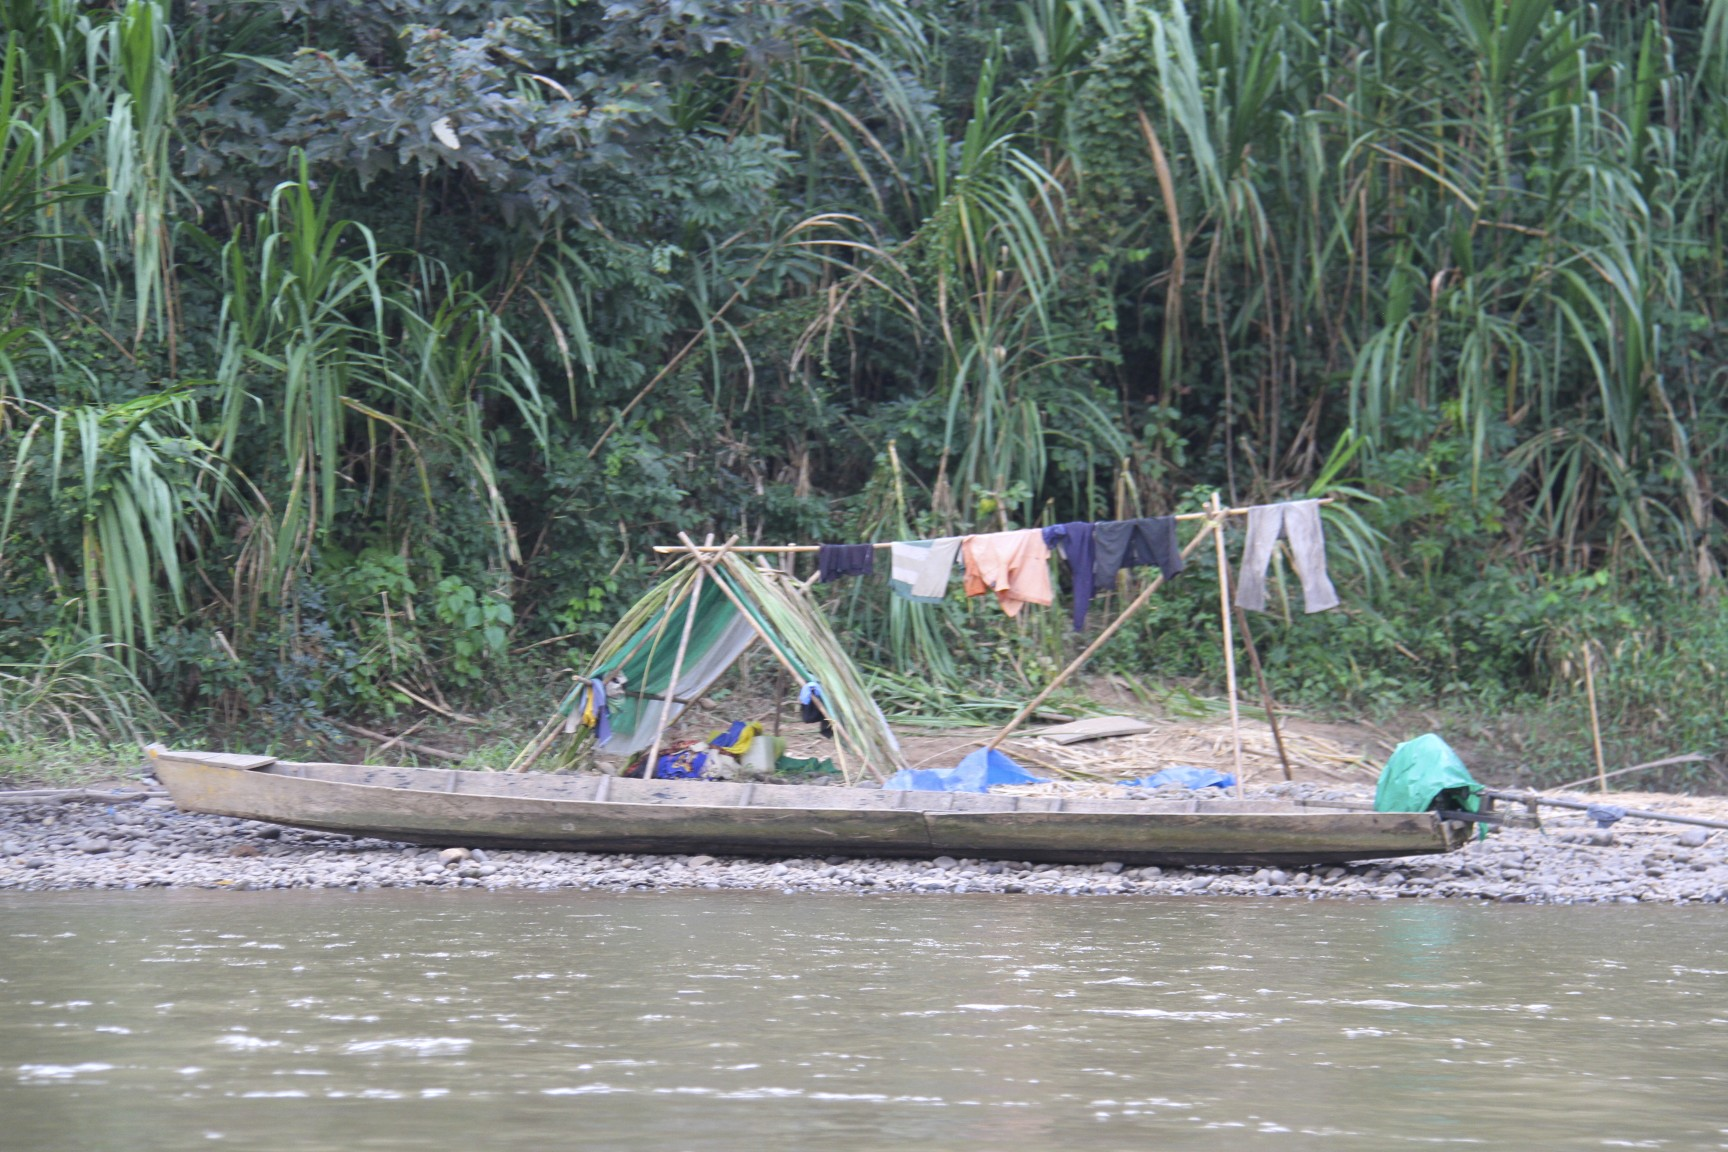 Canoe and washing, Rio Tuichi, Amazon, Bolivia